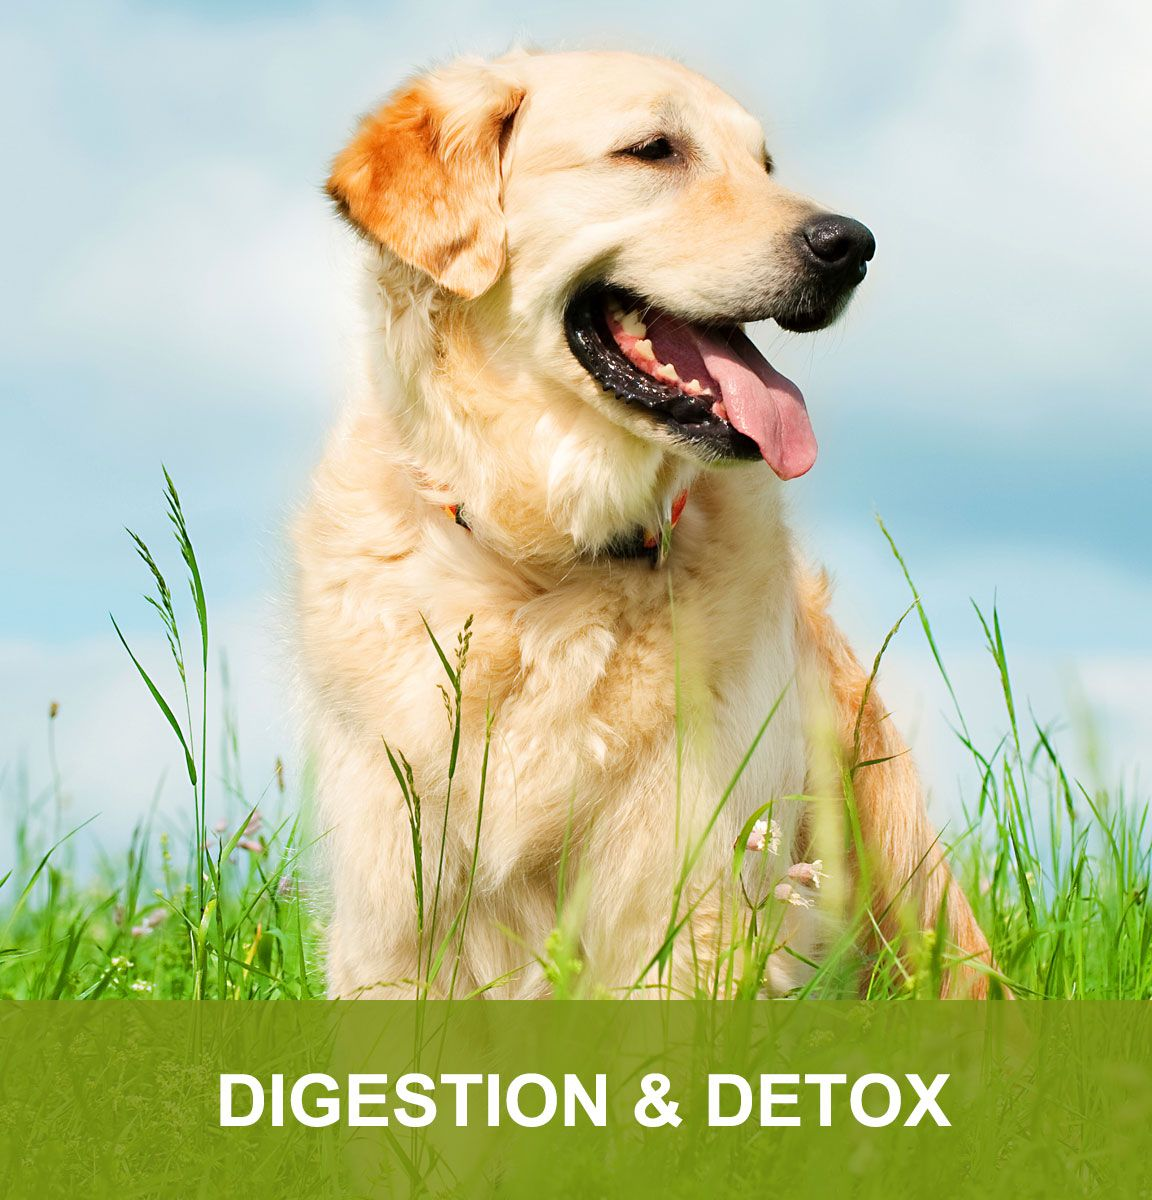 Digestion and Detox